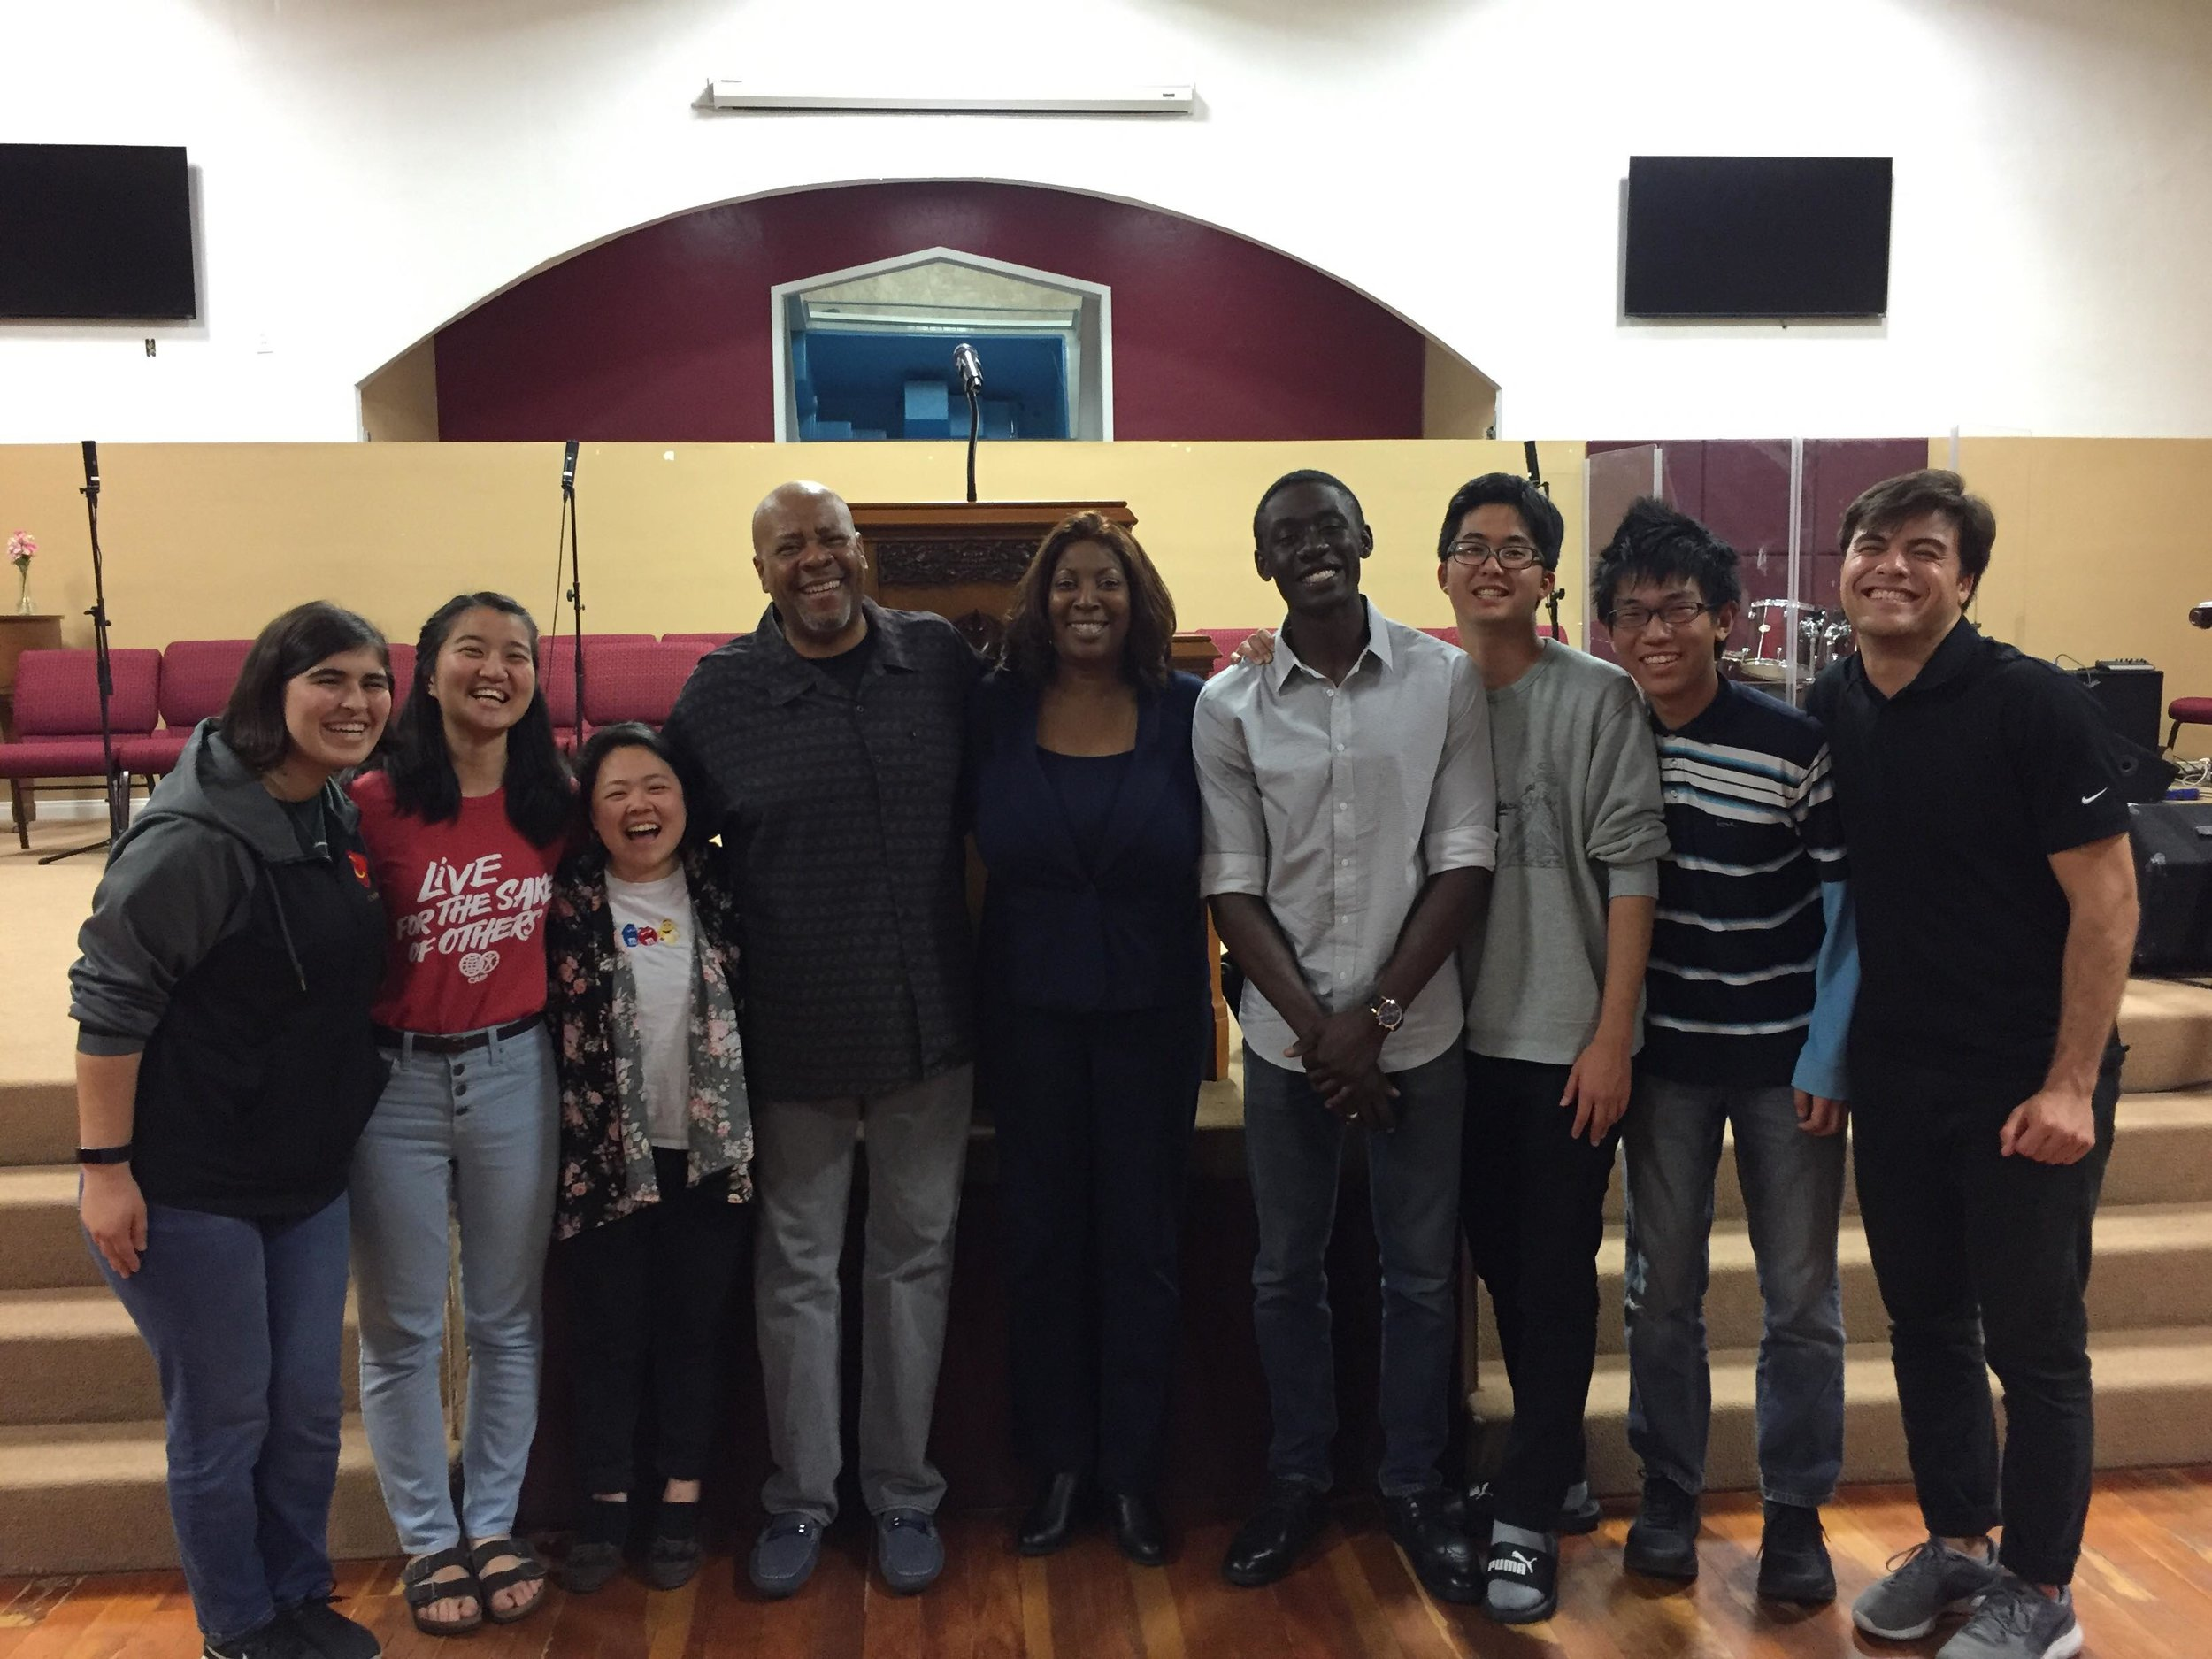 CARP LA members went to churches on Sundays and during the week to visit pastors and youth groups.